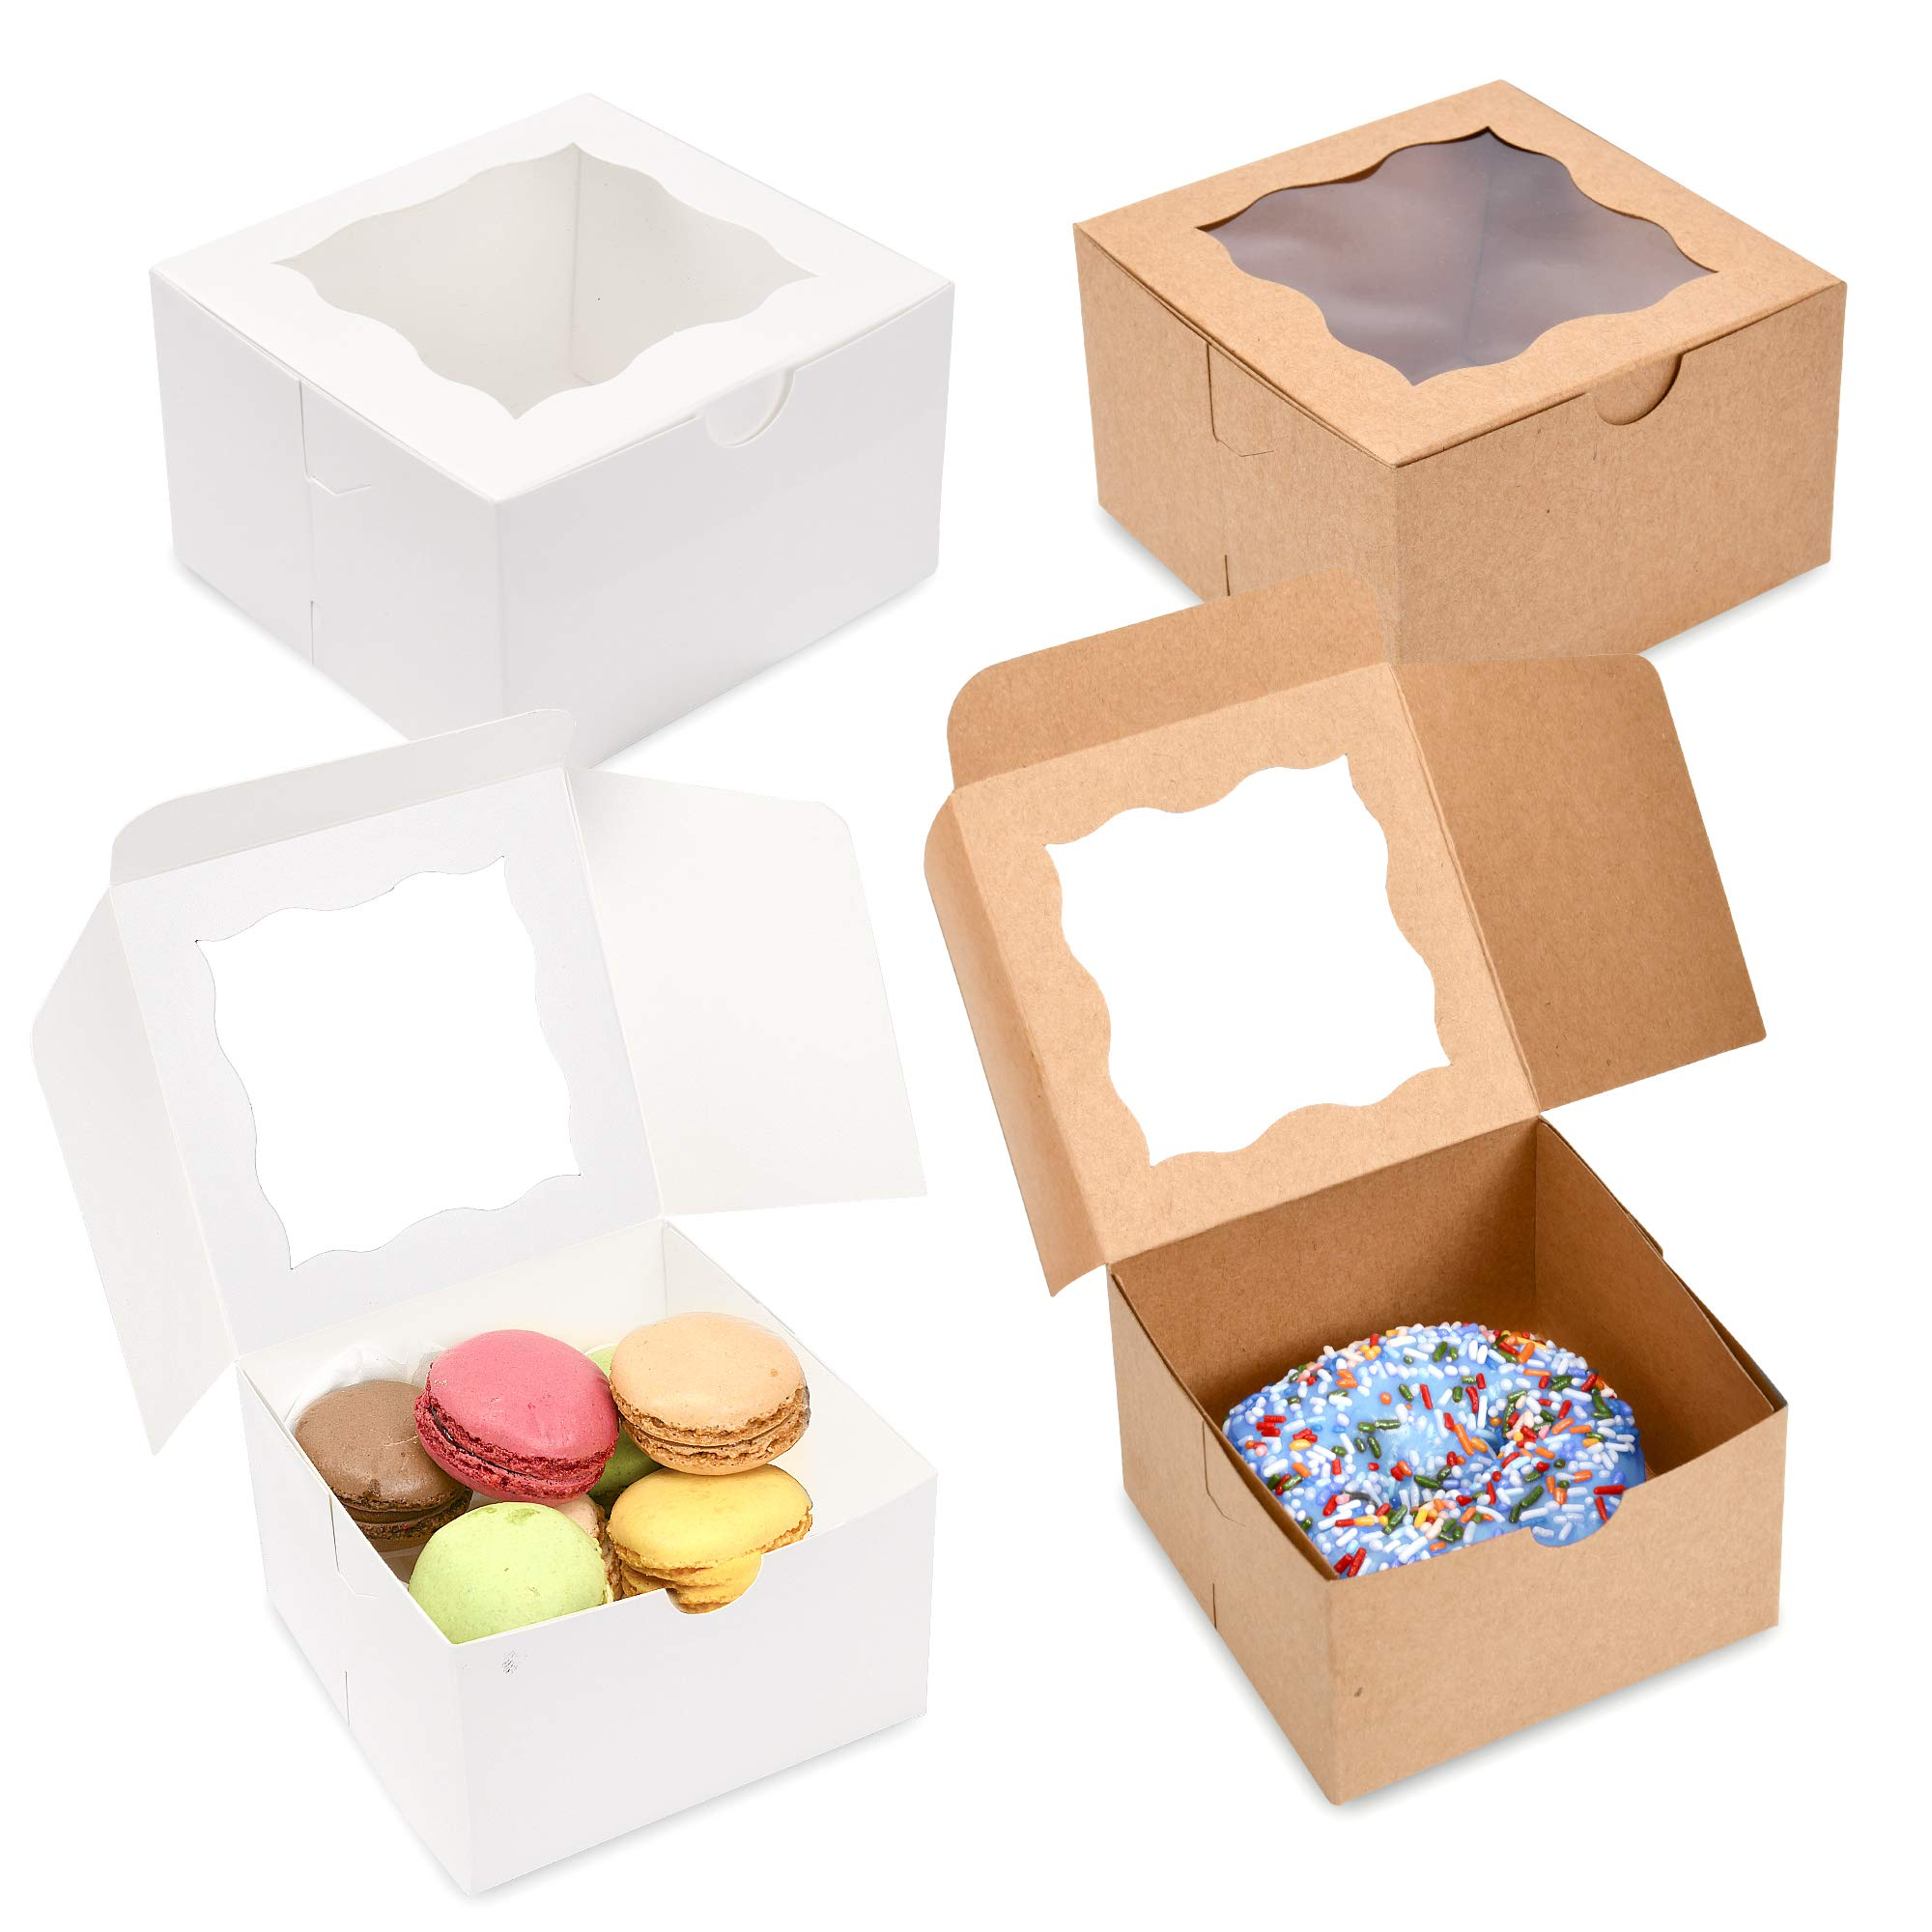 {Pack of 50} White Bakery Boxes with Window 4x4x2.5'' Cute Cardboard Gift Packaging Containers for Cookies, Cupcakes, Small Desserts, Pastry, Wedding Cake, Baby Showers, Donuts, Treats, Party Favors!